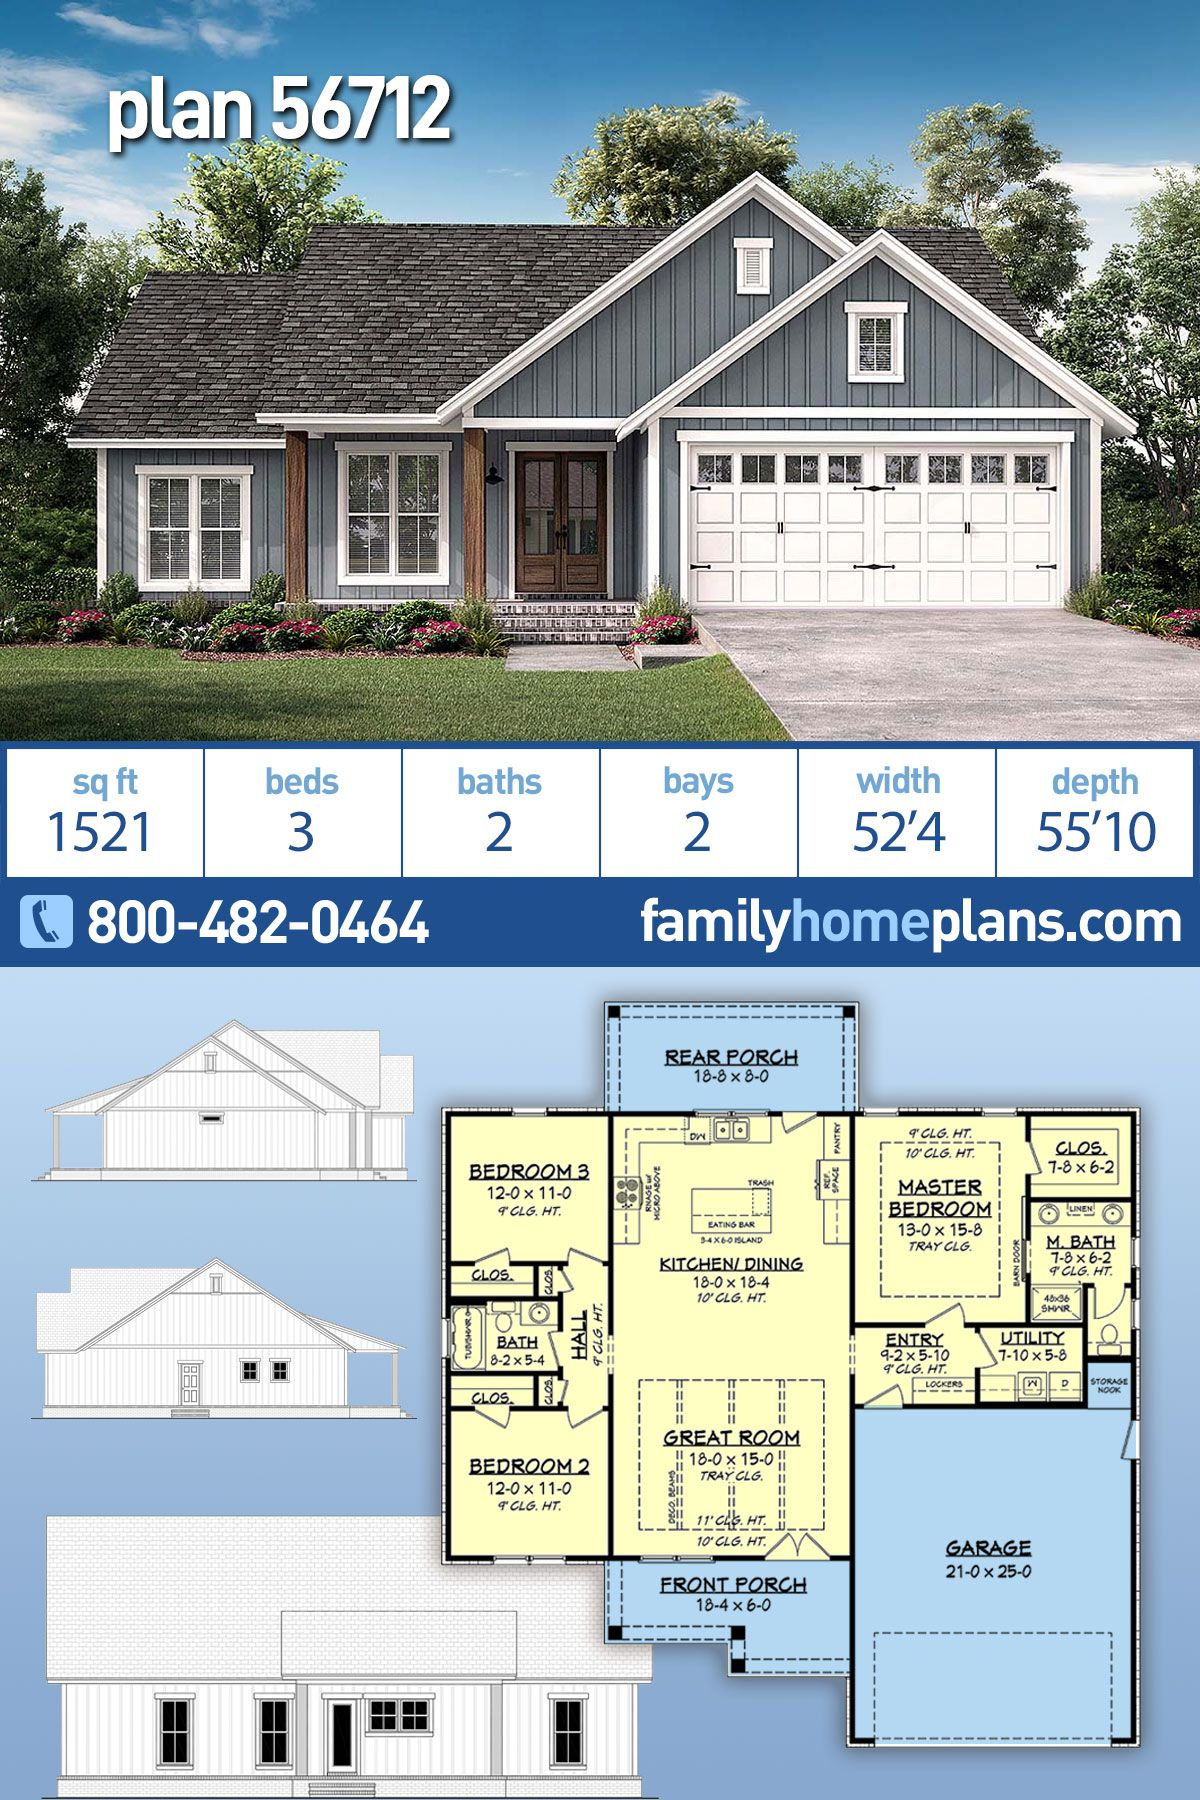 Traditional Style House Plan 56712 With 3 Bed 2 Bath 2 Car Garage House Plans Farmhouse Ranch House Plans New House Plans